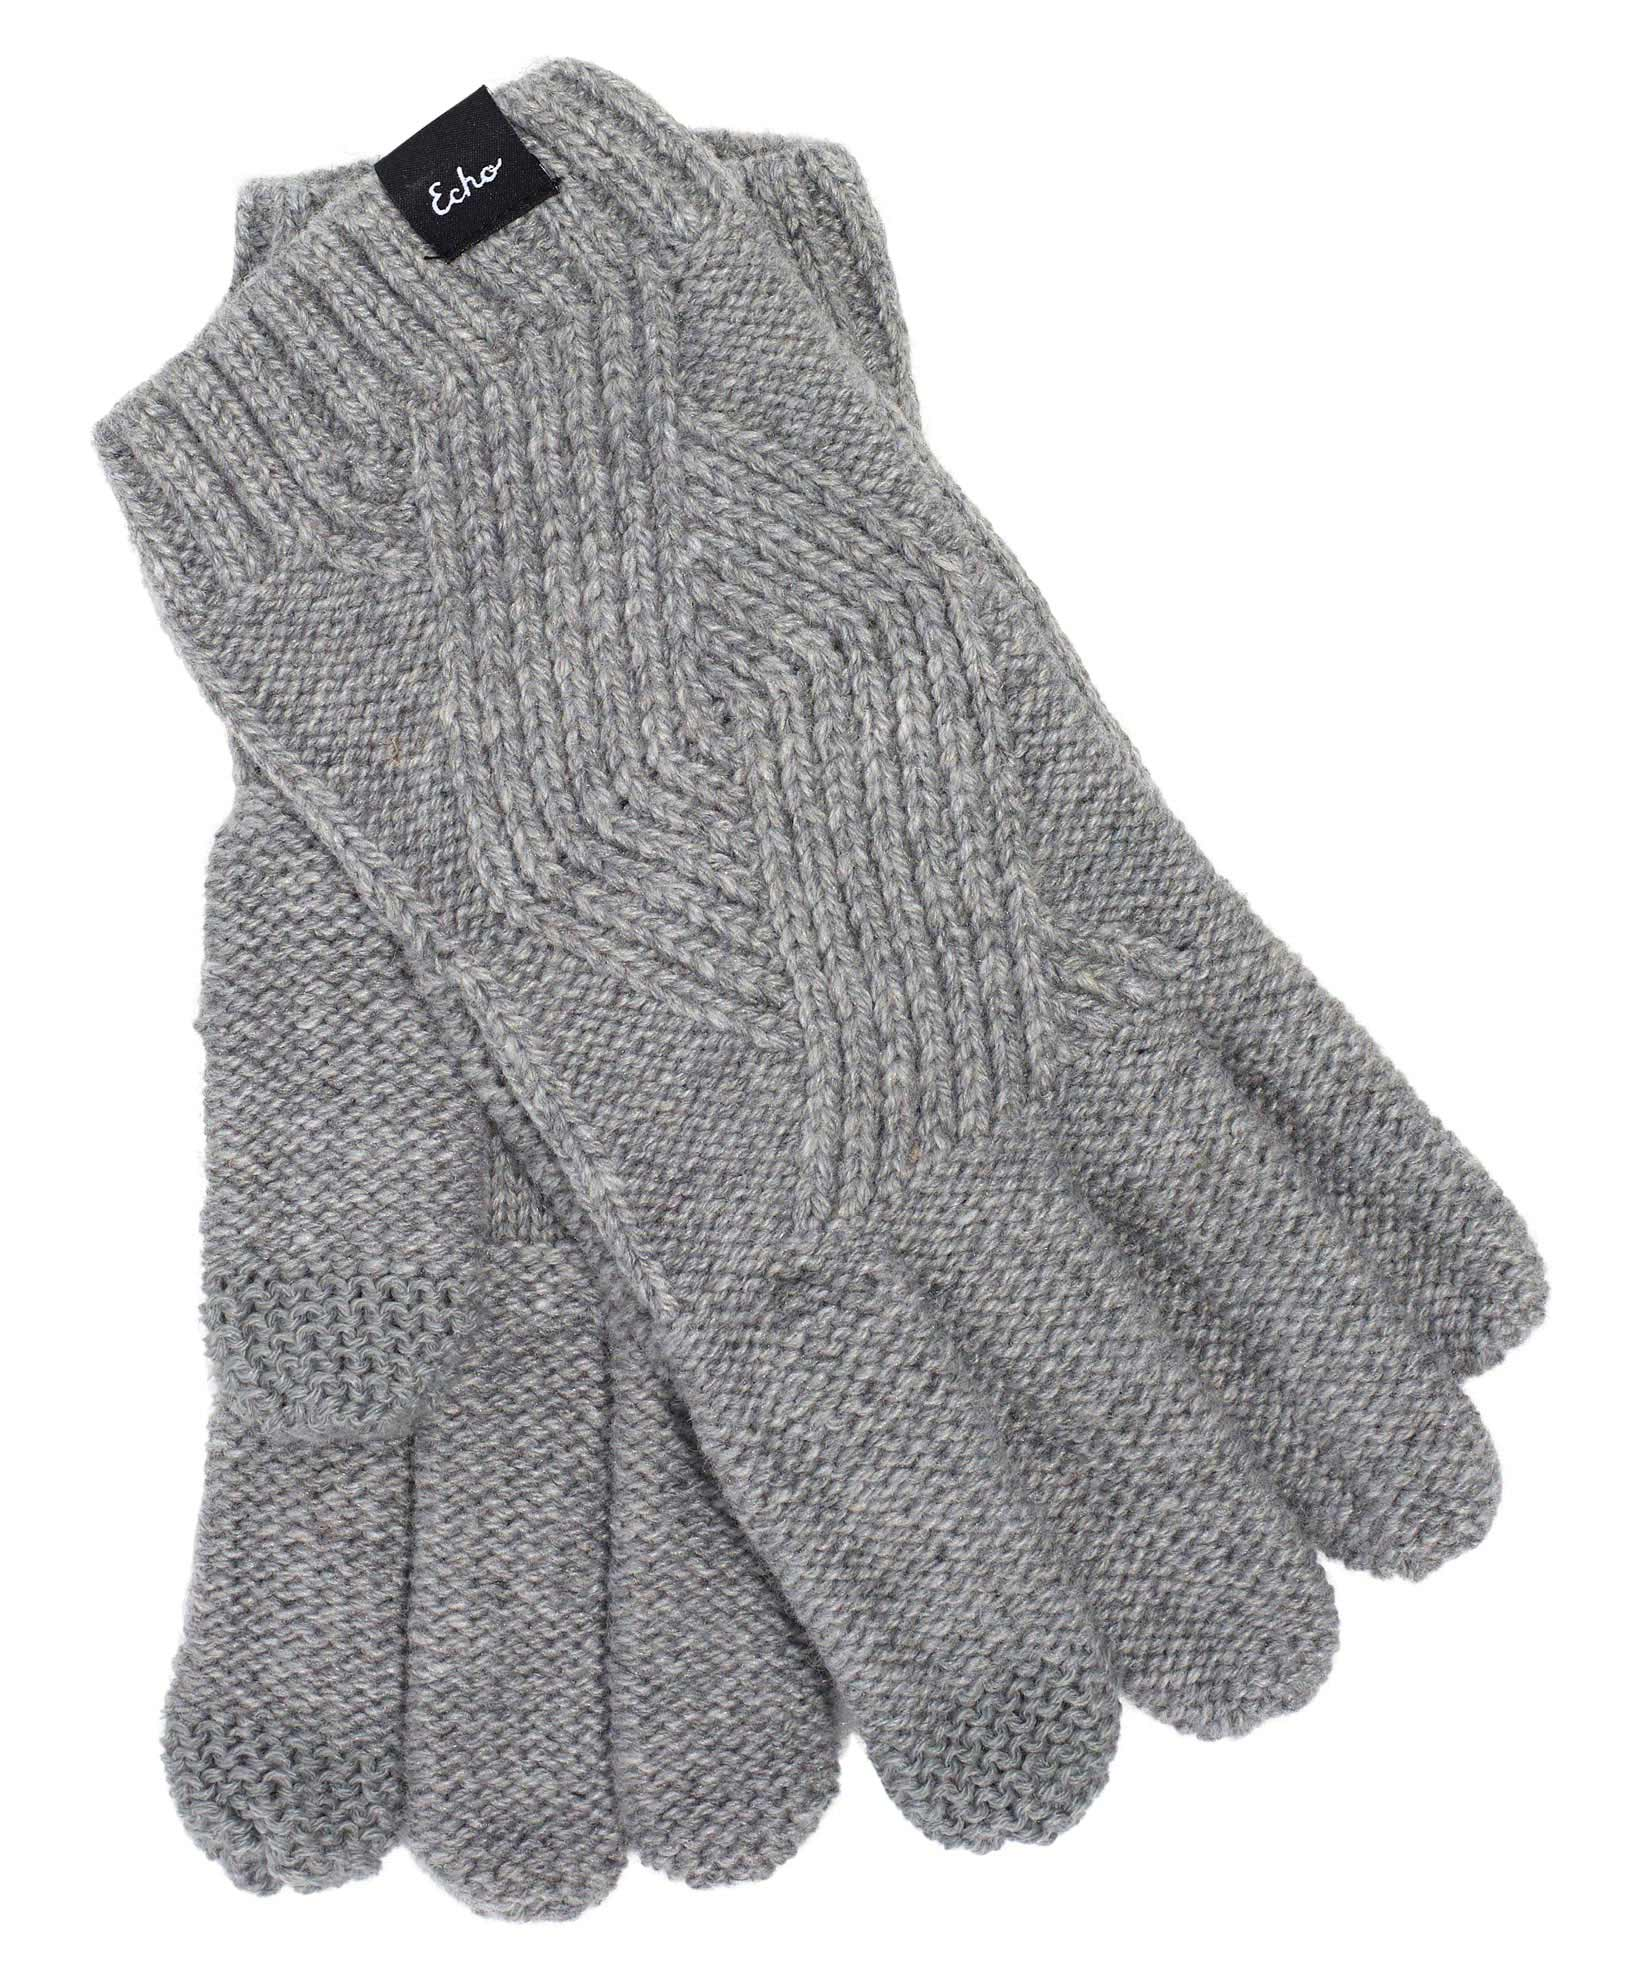 Silver - Recycled Cable Glove